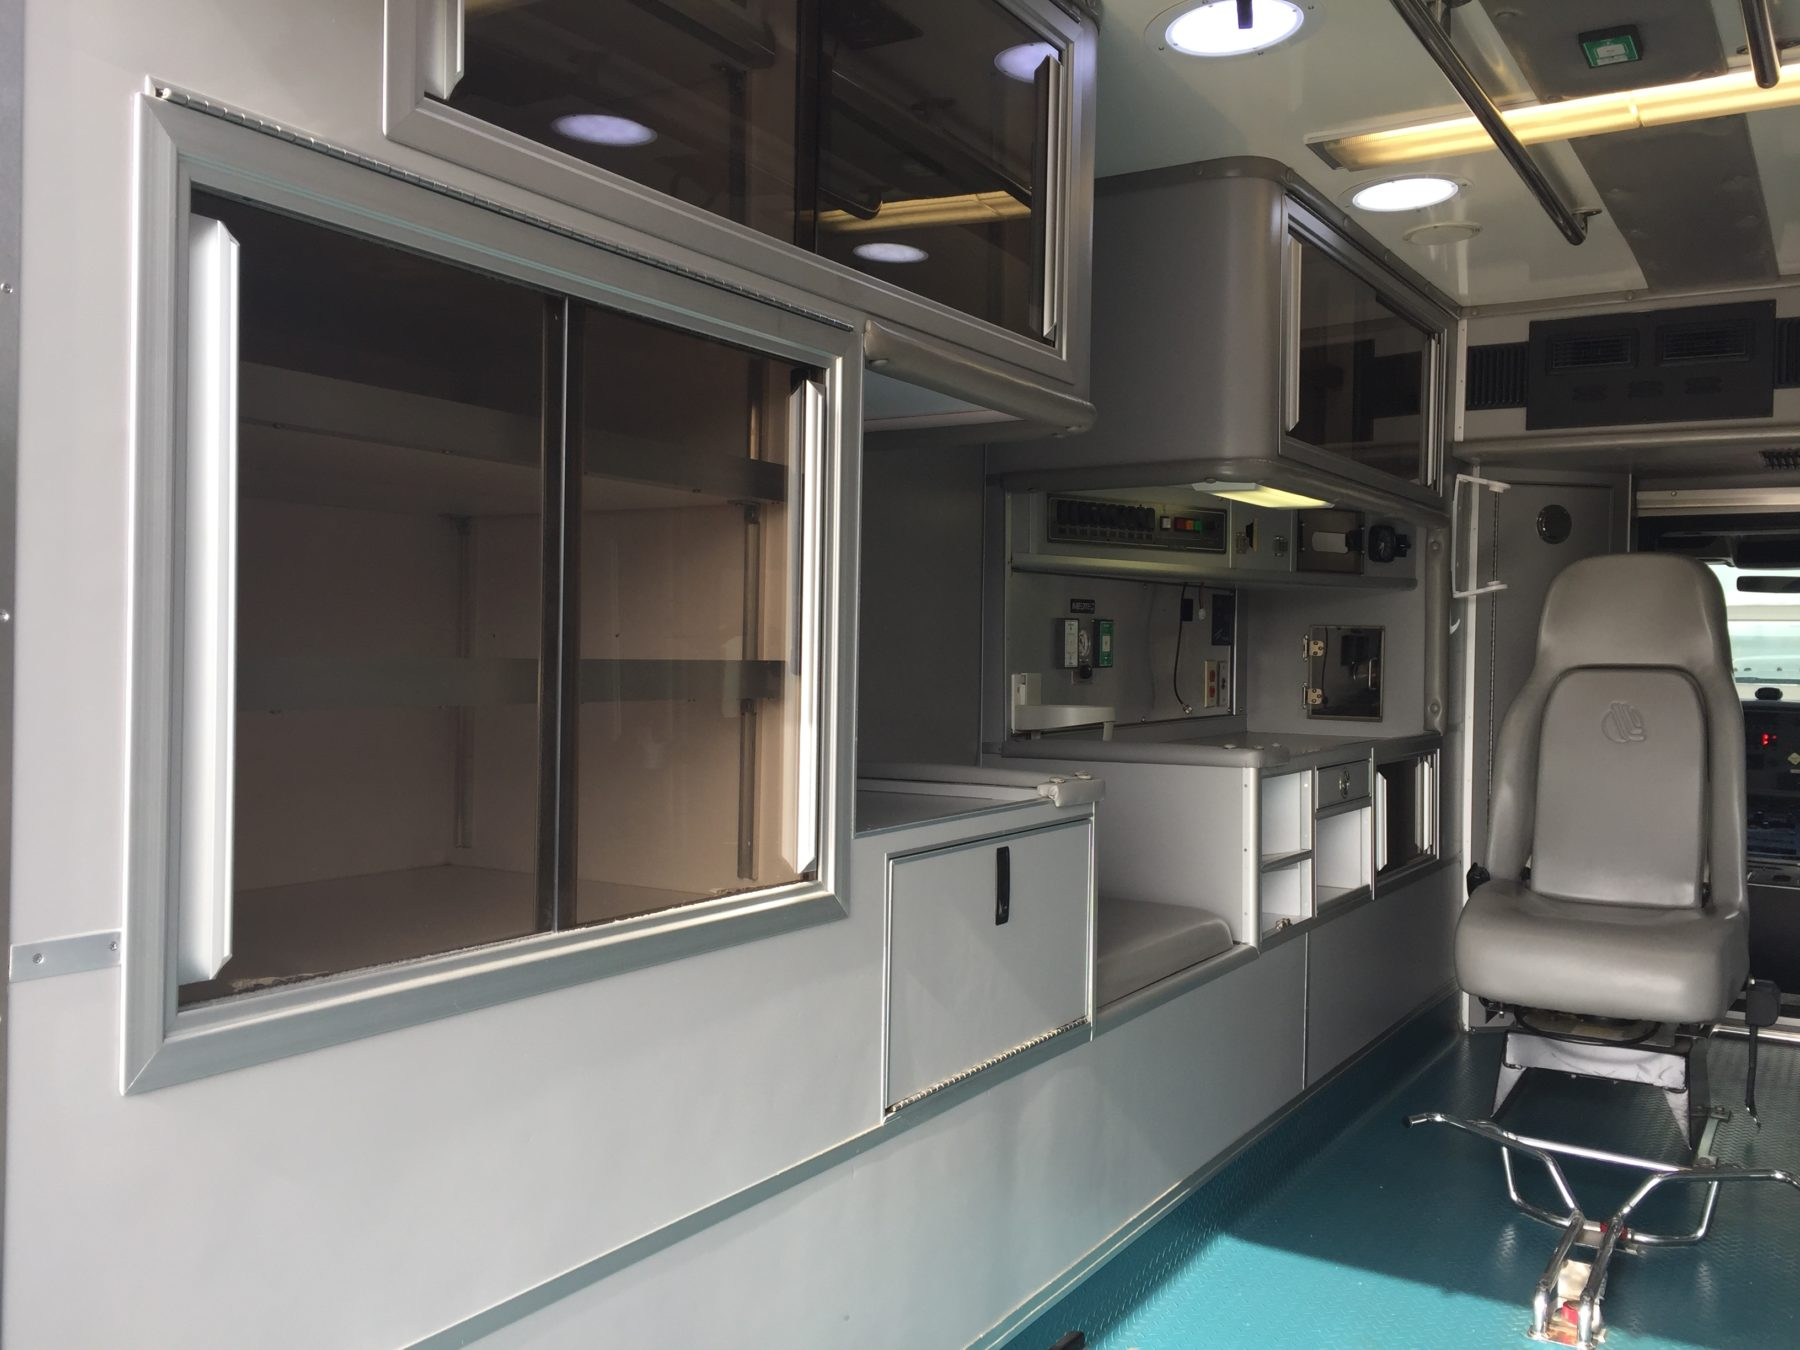 2009 International 4300 Heavy Duty Ambulance For Sale – Picture 12